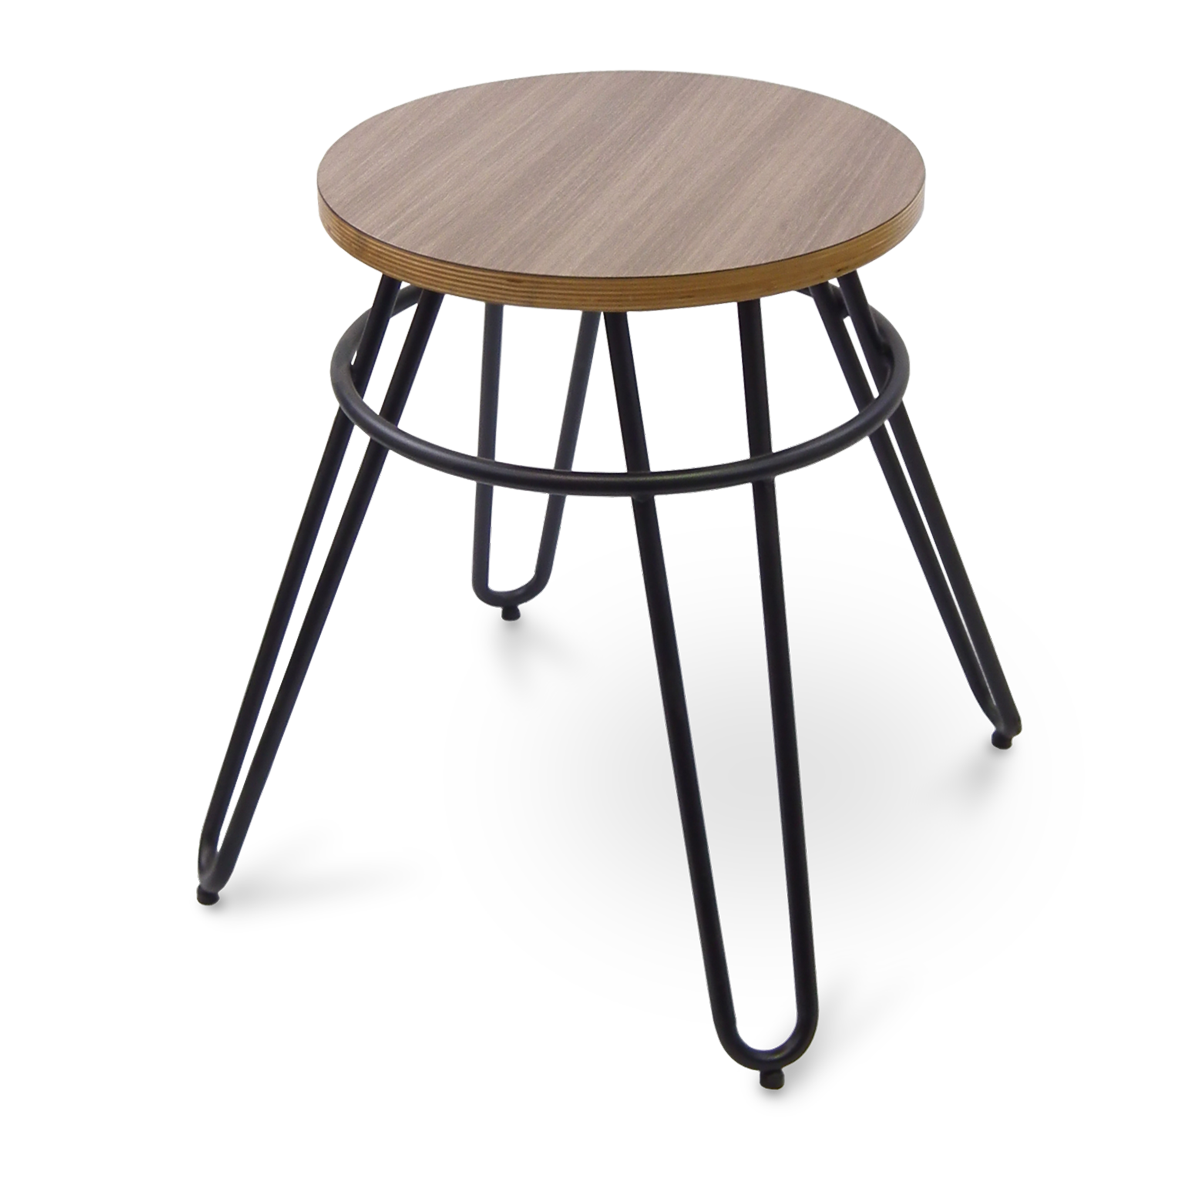 Molded Laminate on Hairpin Legs, Backless Chair